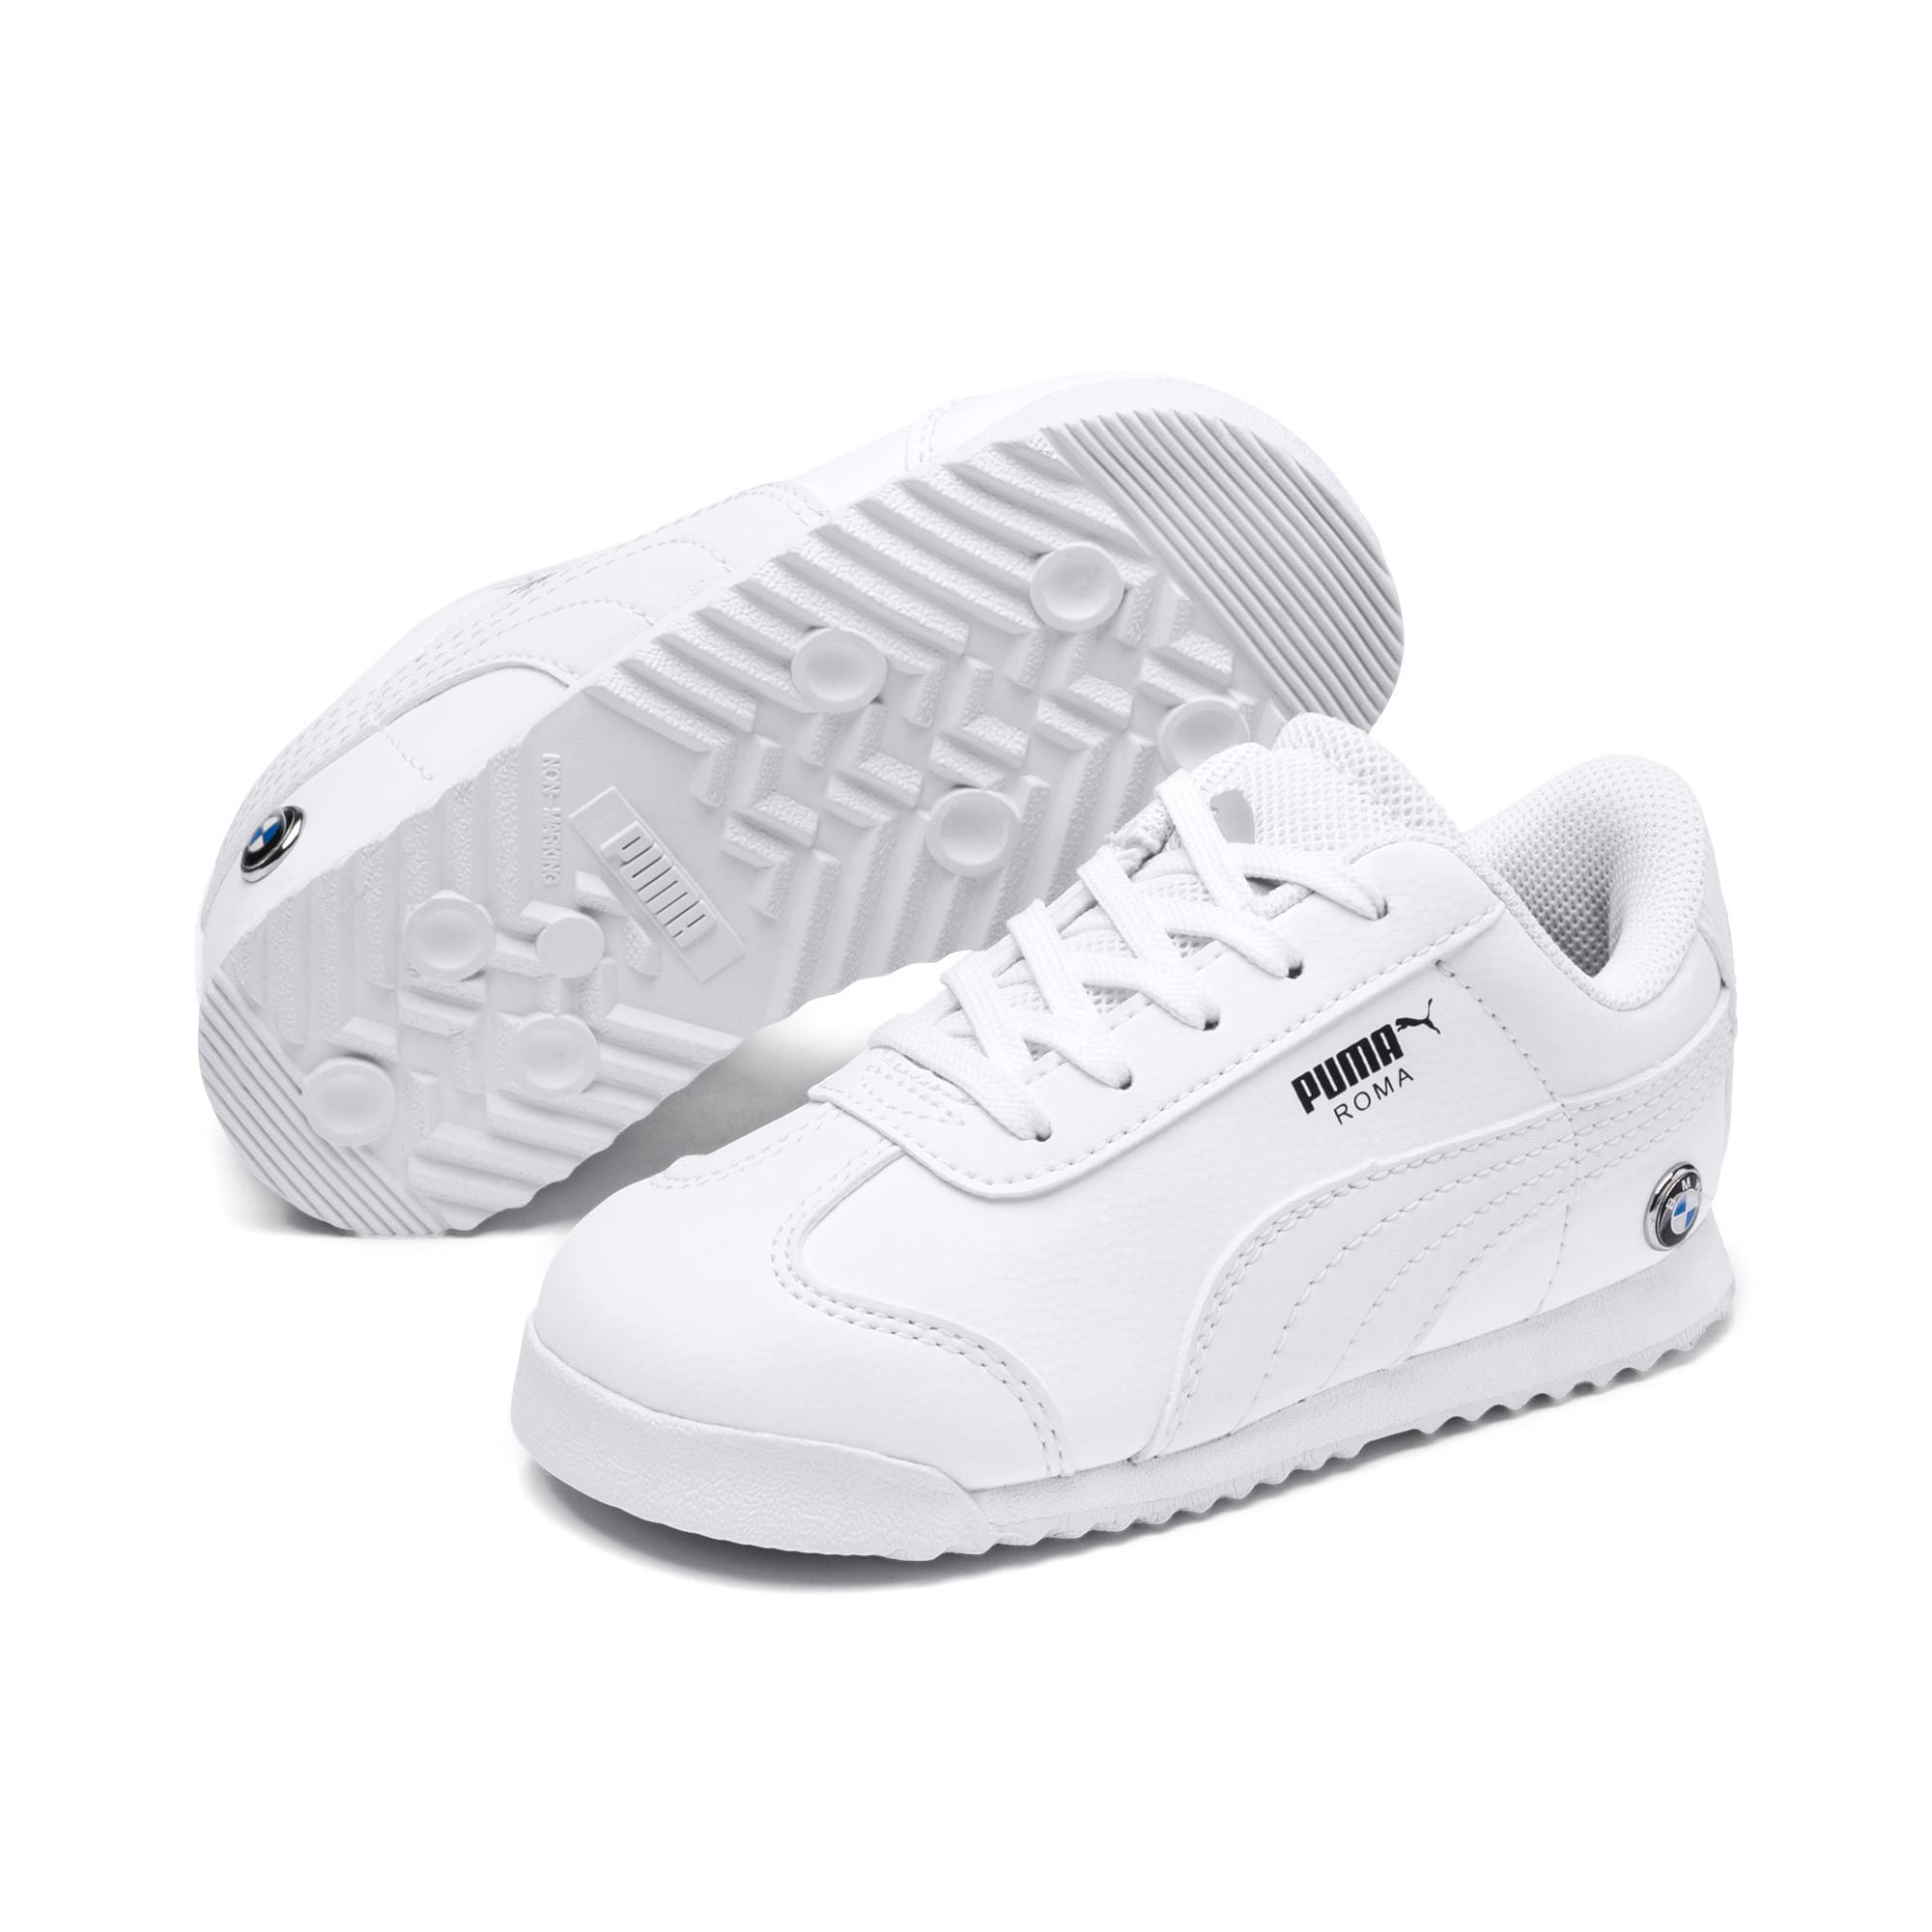 Thumbnail 2 of BMW M Motorsport Roma Toddler Shoes, Puma White-Puma White, medium